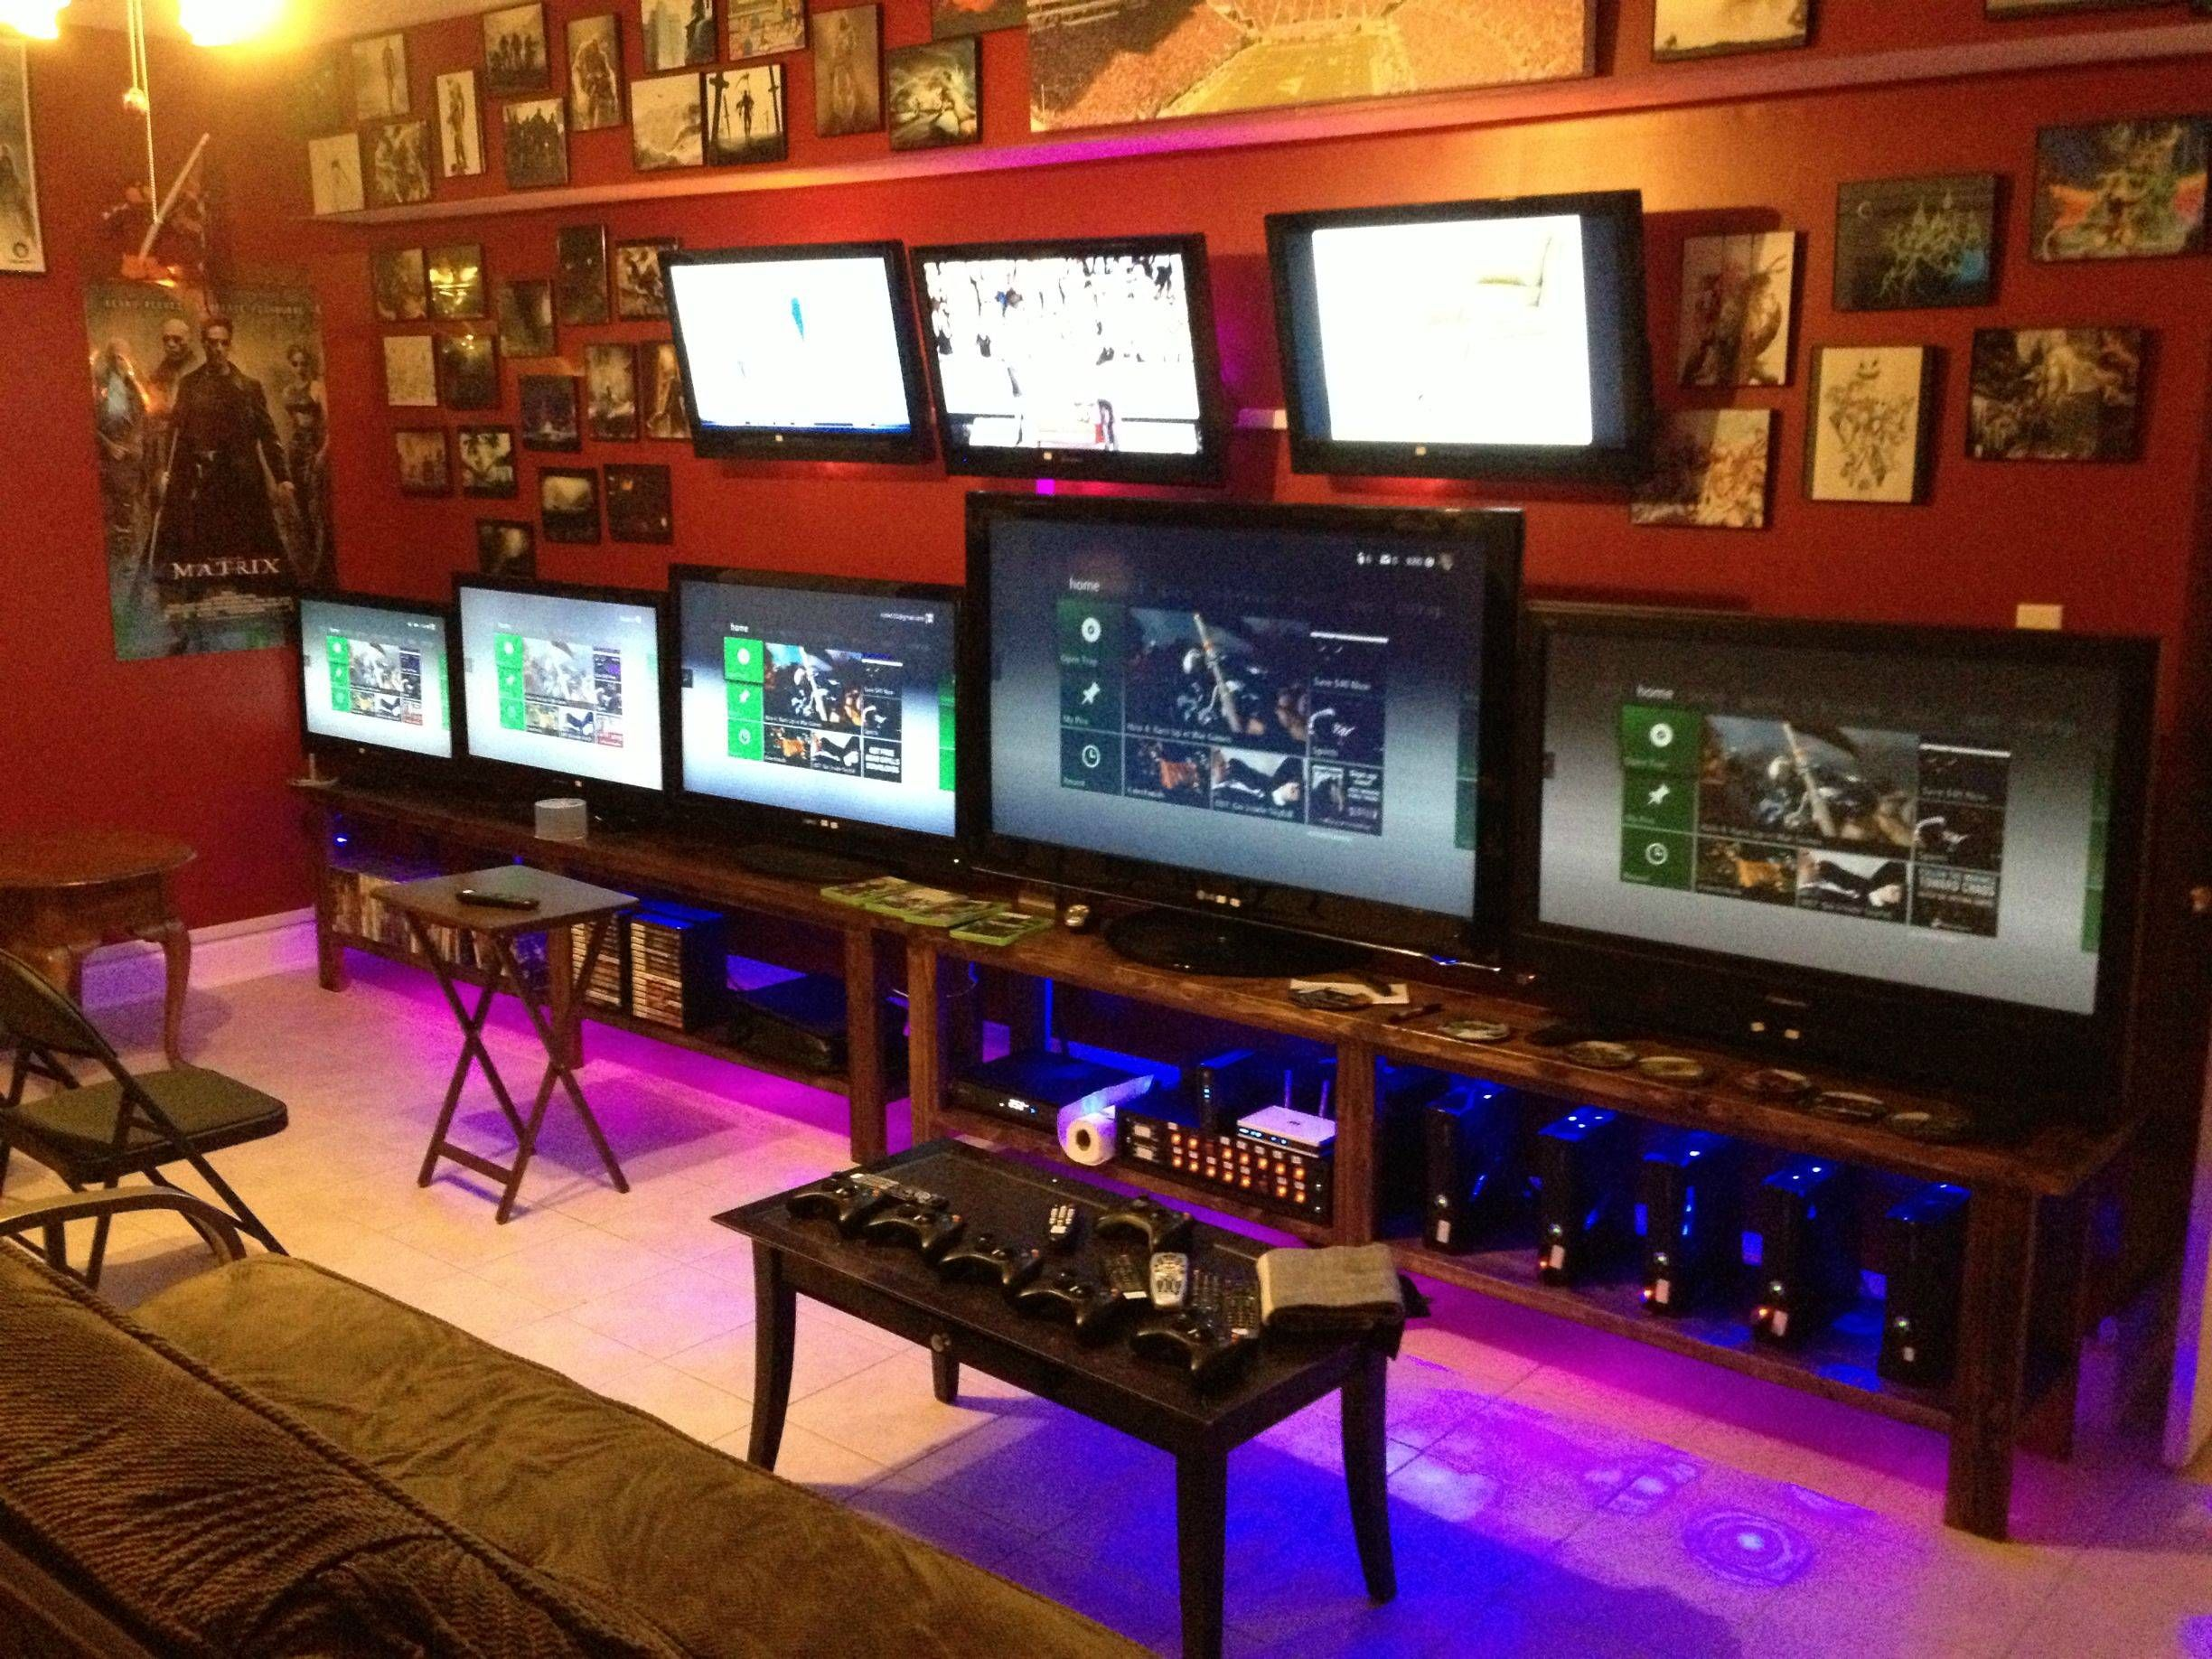 Dream house game room - Lately I Ve Been Thinking I Want To Move Something New You Know But Seeing This I Realize I Don T Want I Need To Move To A House Where I Can Fit